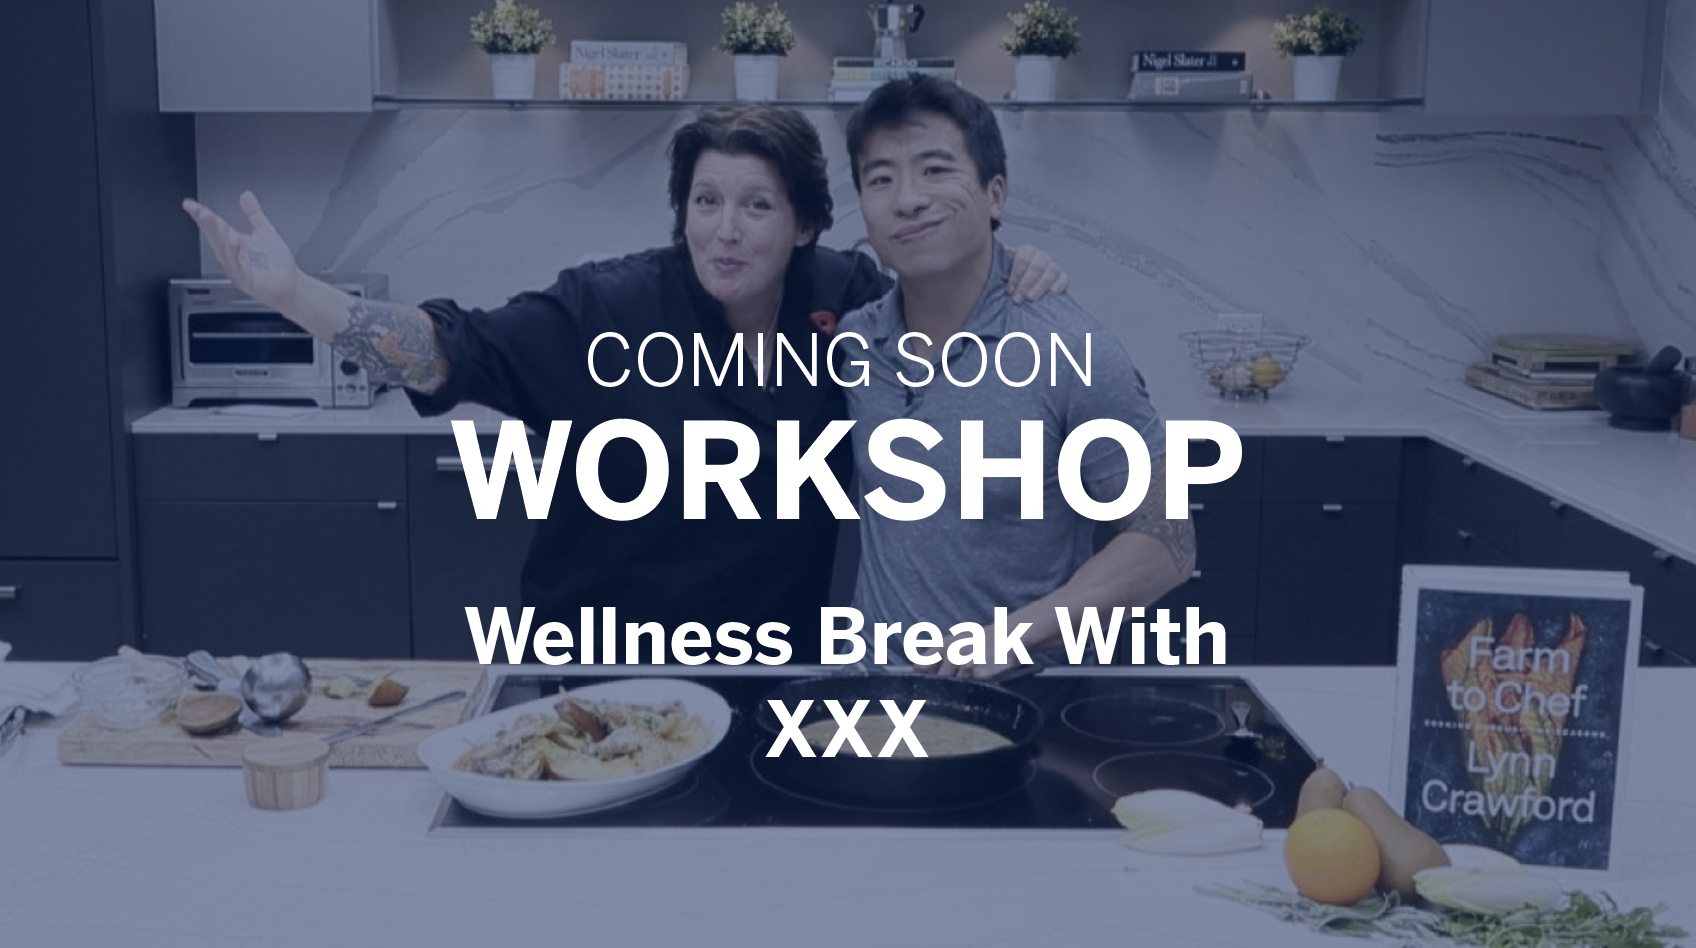 Workshop - Wellness Break With XXX